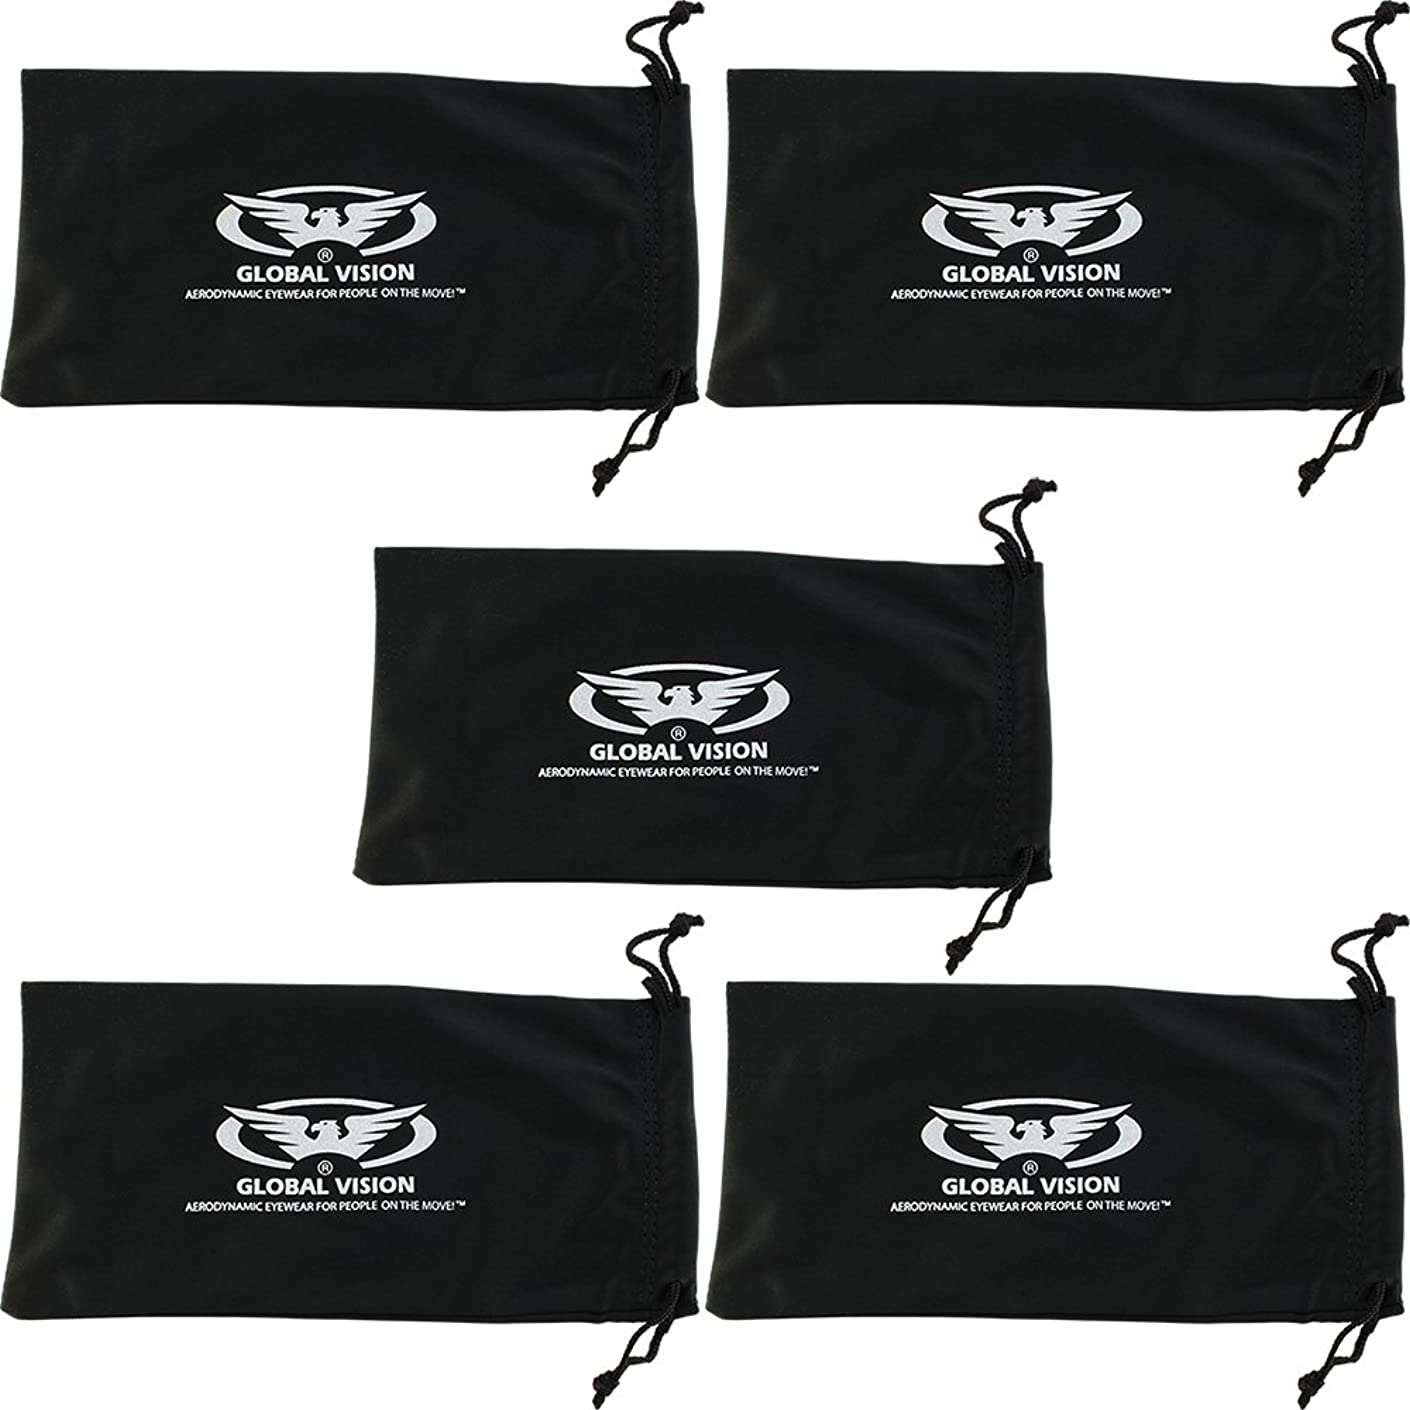 Five Large Black Micro-Fiber Bags Sunglasses Goggles Cell Phone Carrying Pouch Case Sleeve